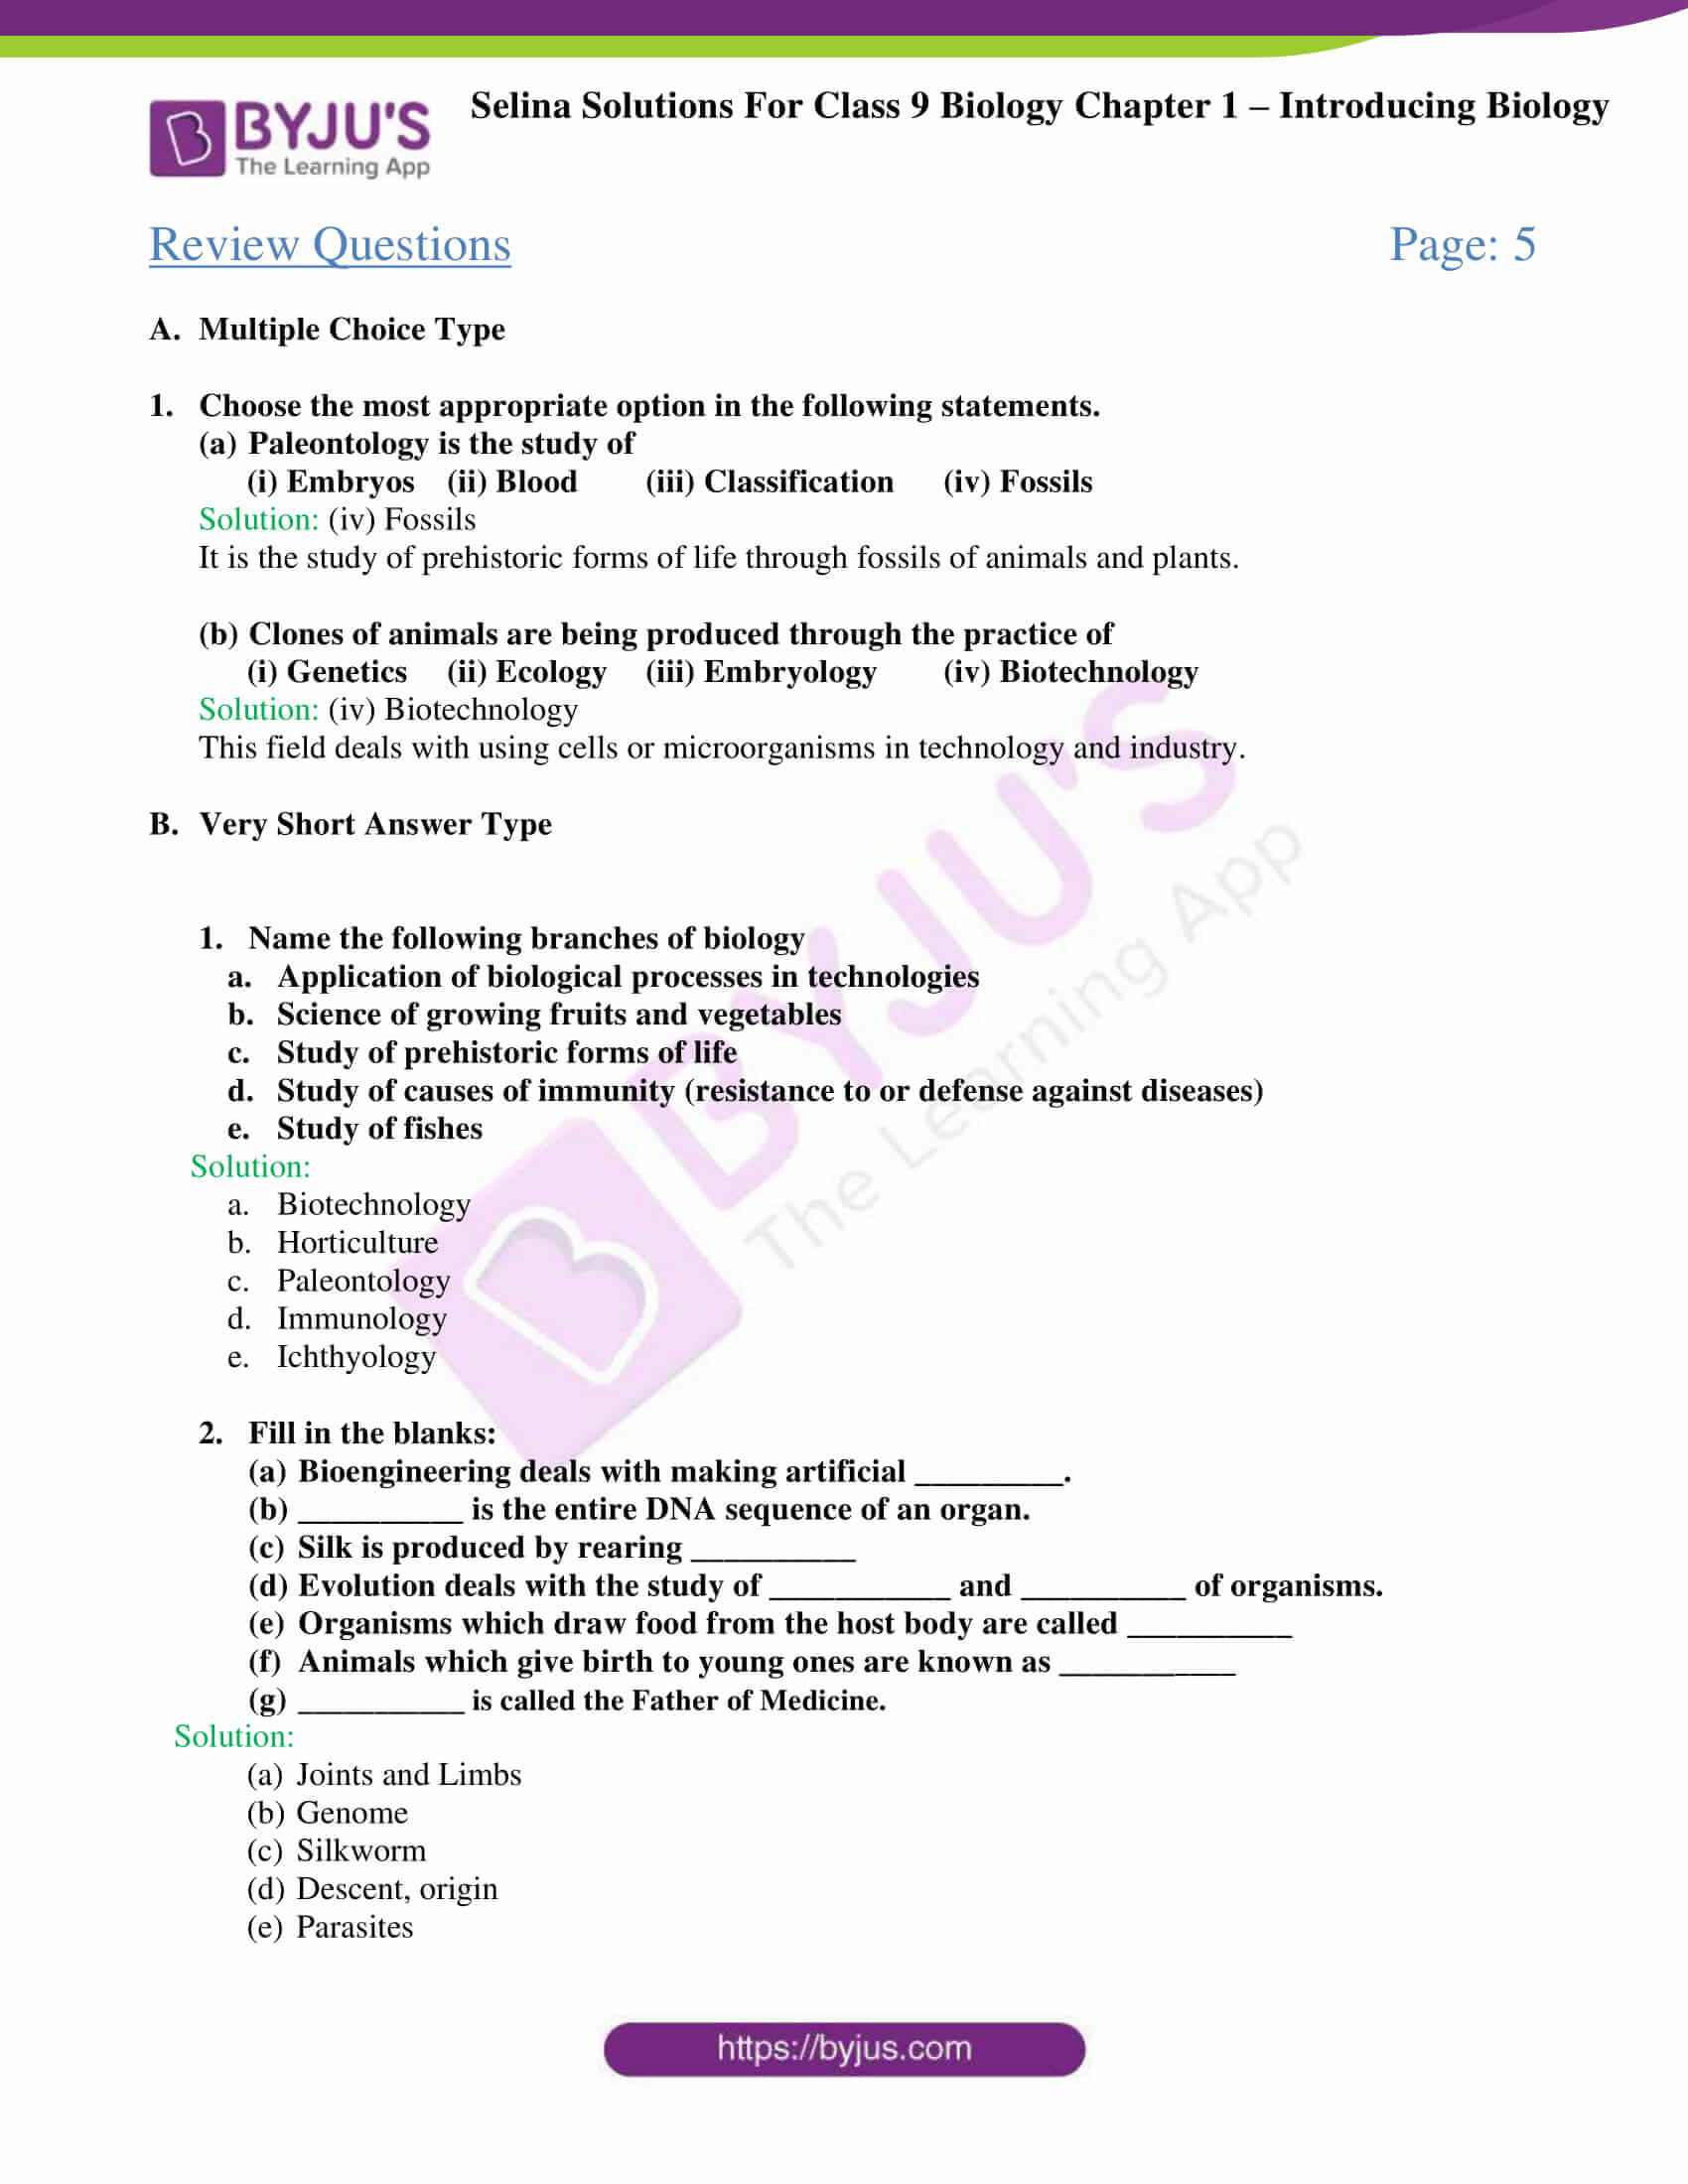 Selina Solutions For Class 9 Biology Chapter 1 Introducing Biology part 2